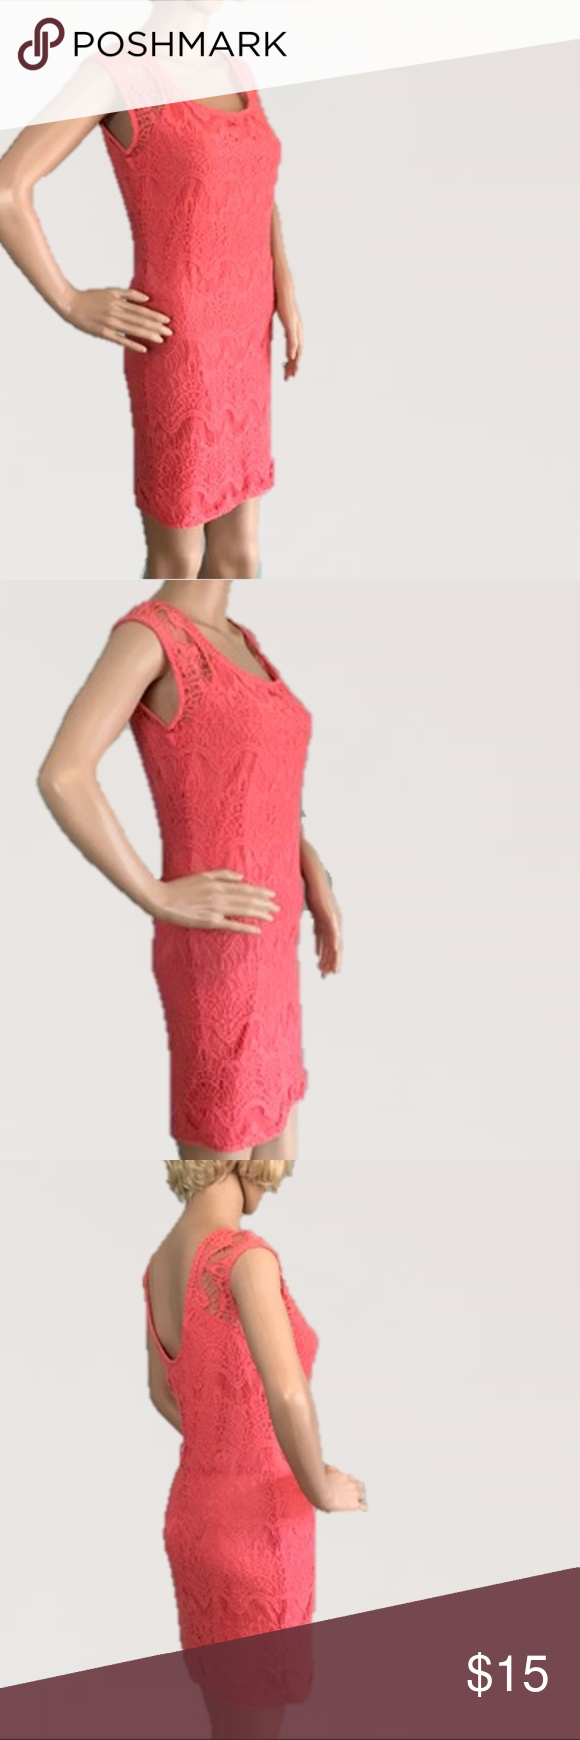 Pink dress forever 21  Coral Crochet Sheath cute Dress Forever   st dresses st and